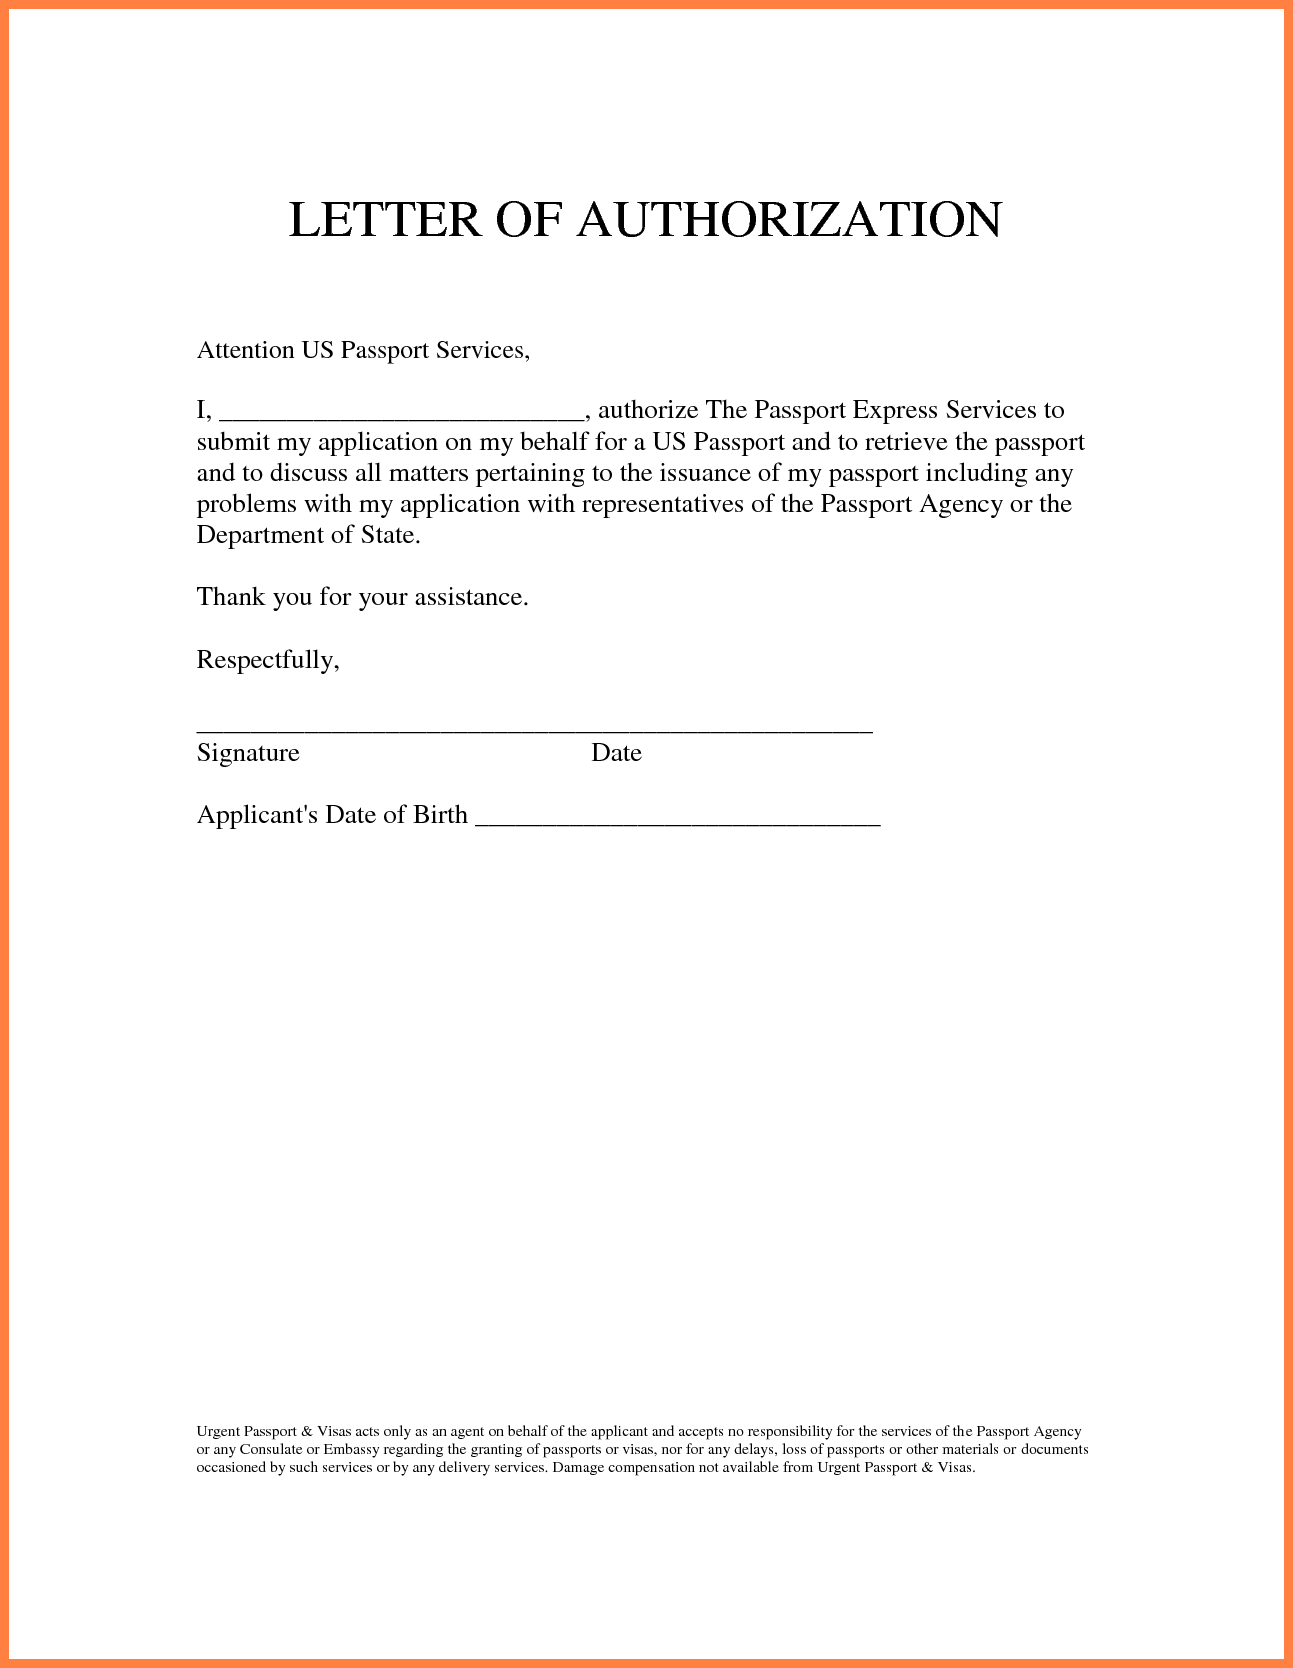 notarized letter of authorization template - sample authorization letter granting permissionthorization